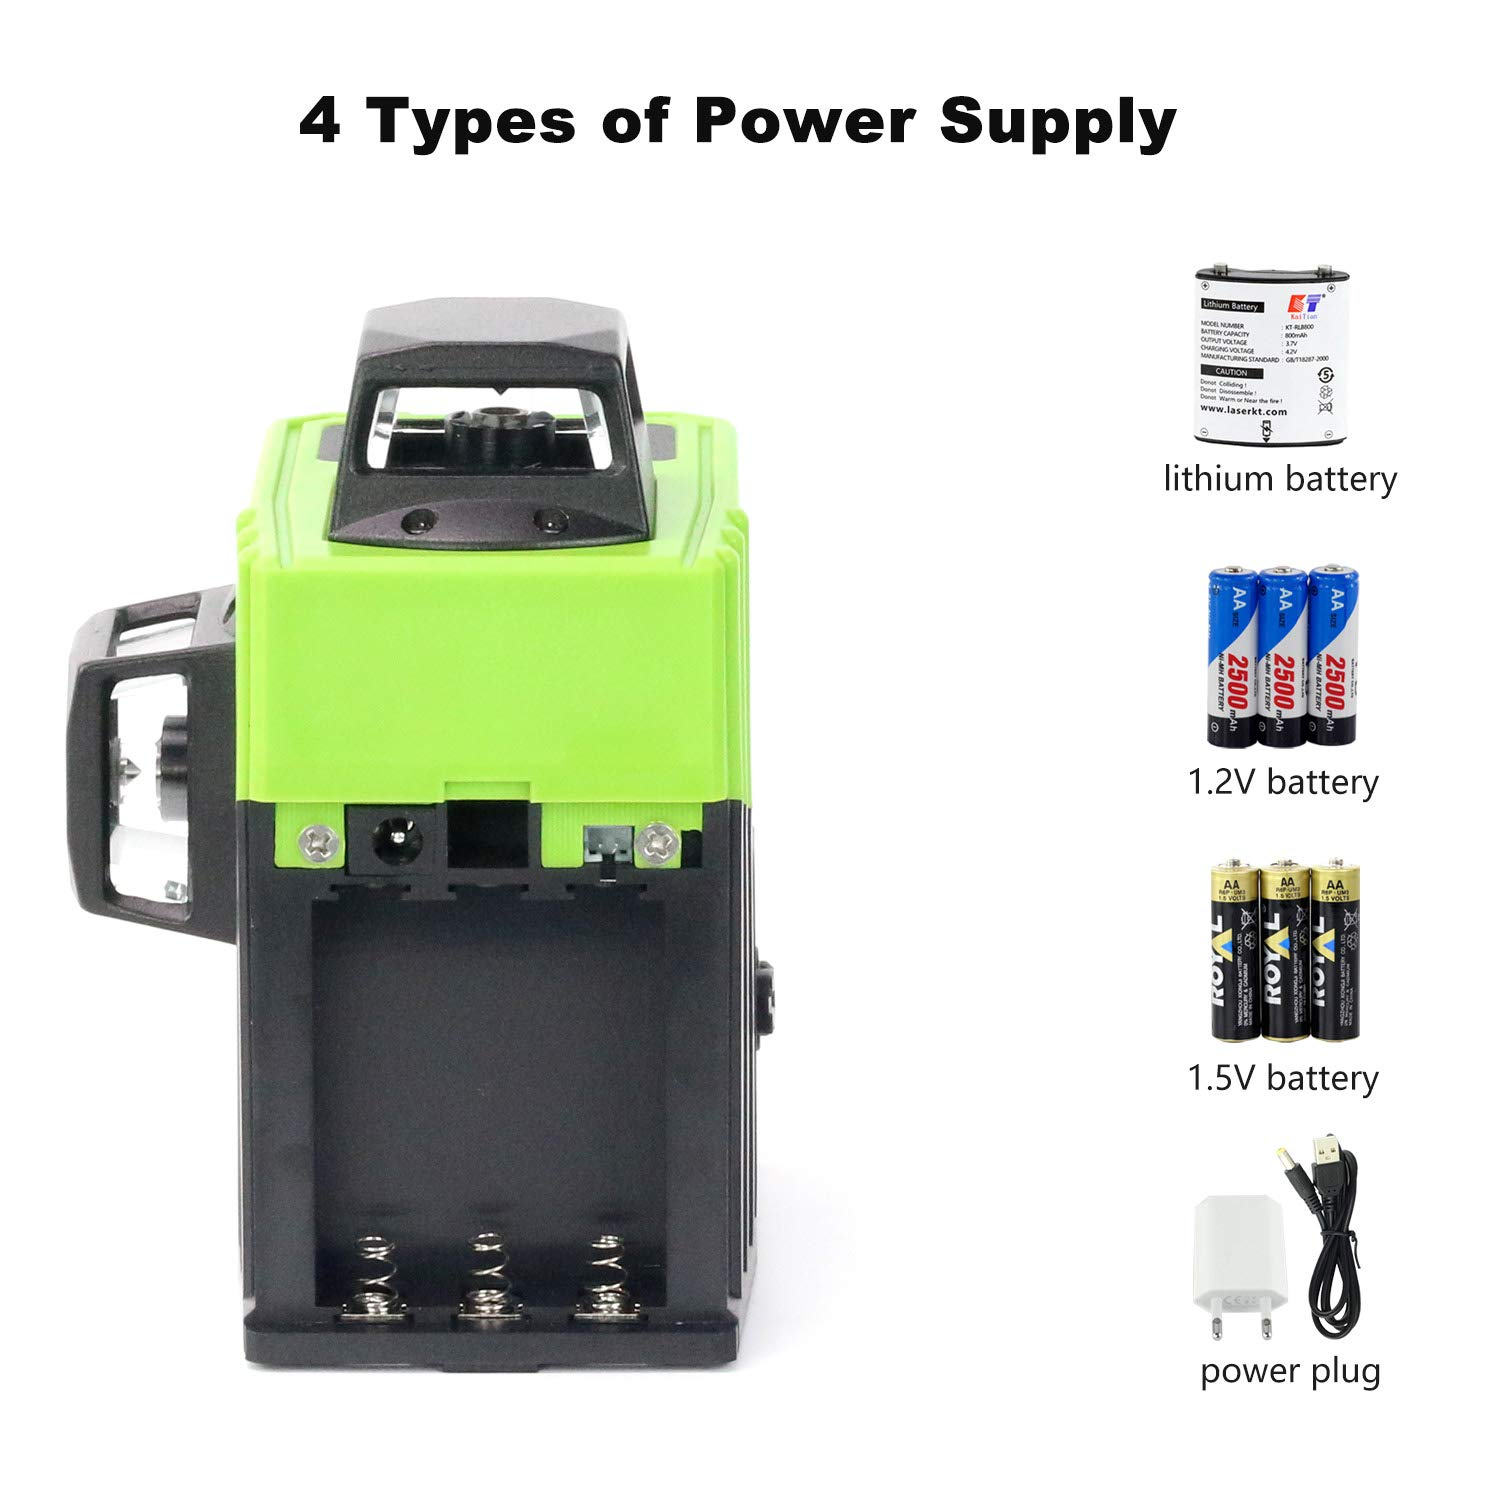 Dingchao Self-Leveling Three-Plane 3 x 360 Green Line Laser Level,with Micro-Adjust / 360 Degree Pivoting Base, Hard Carrying Case,Power Plug Adapter,Multi-functional Laser Leveler Layout Laser Tools by DINGCHAO (Image #9)